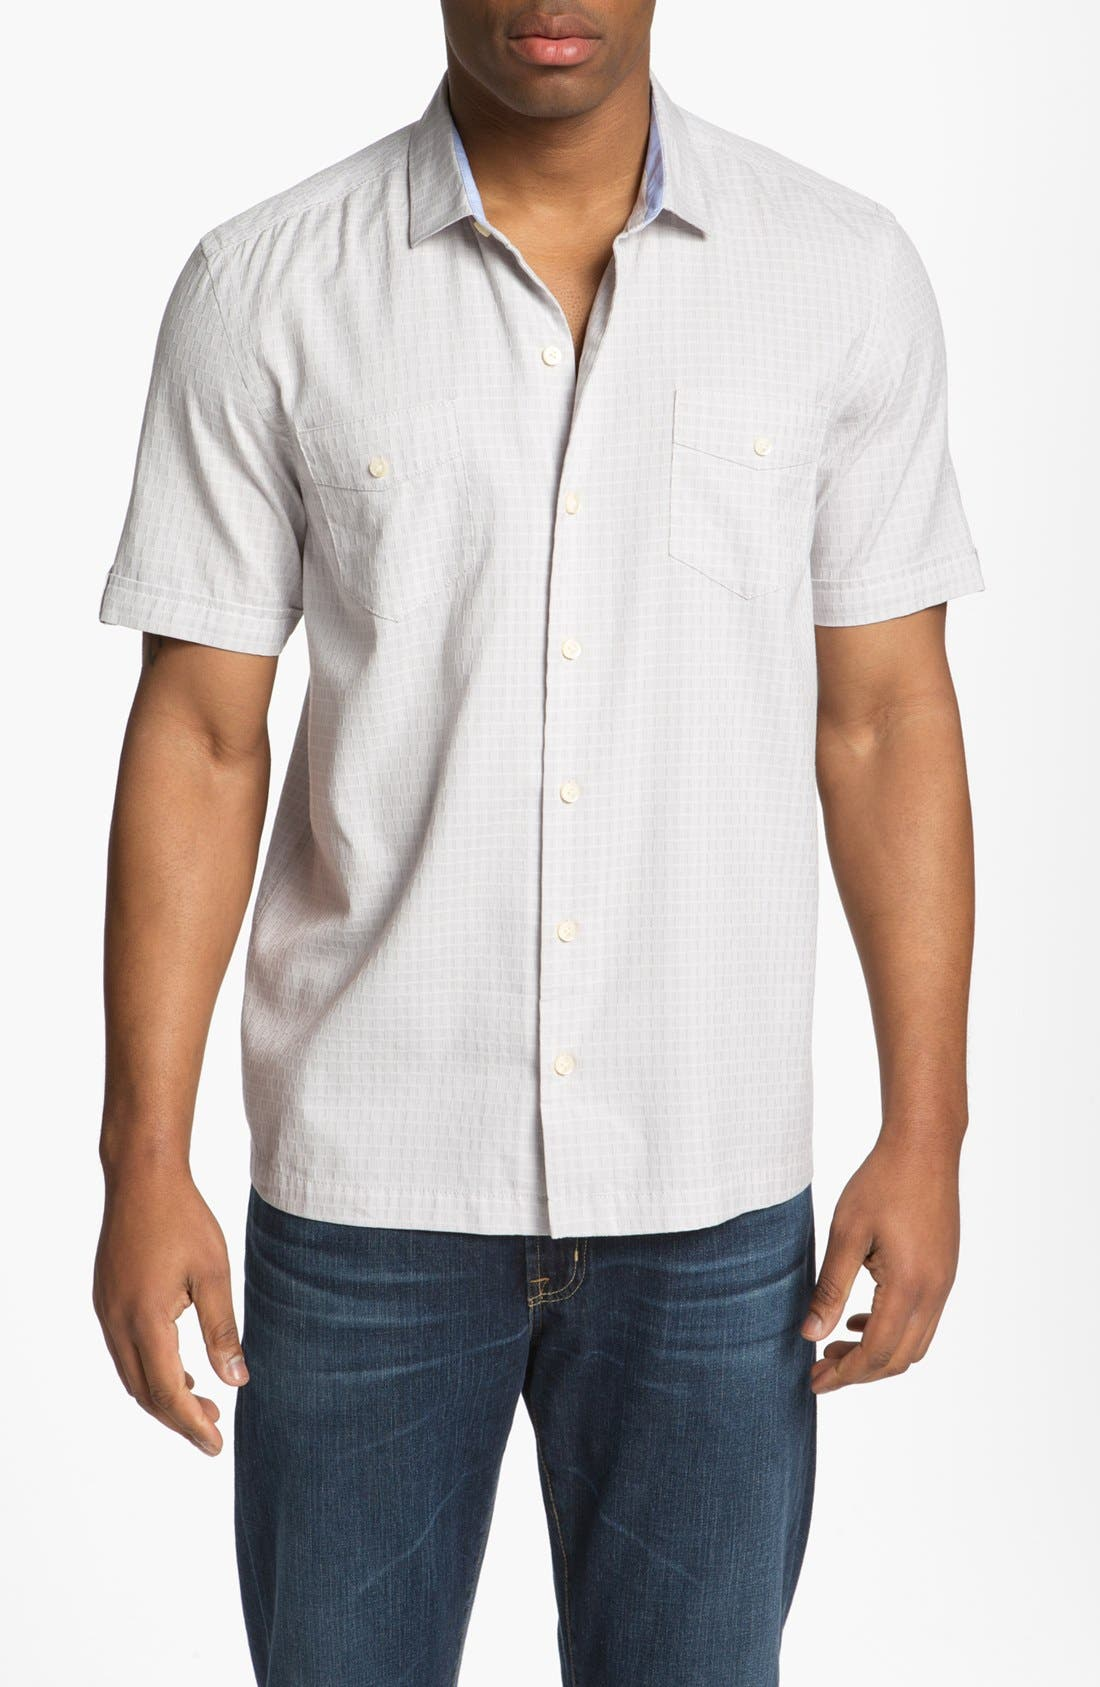 Main Image - Tommy Bahama 'Sound Wave' Silk Blend Campshirt